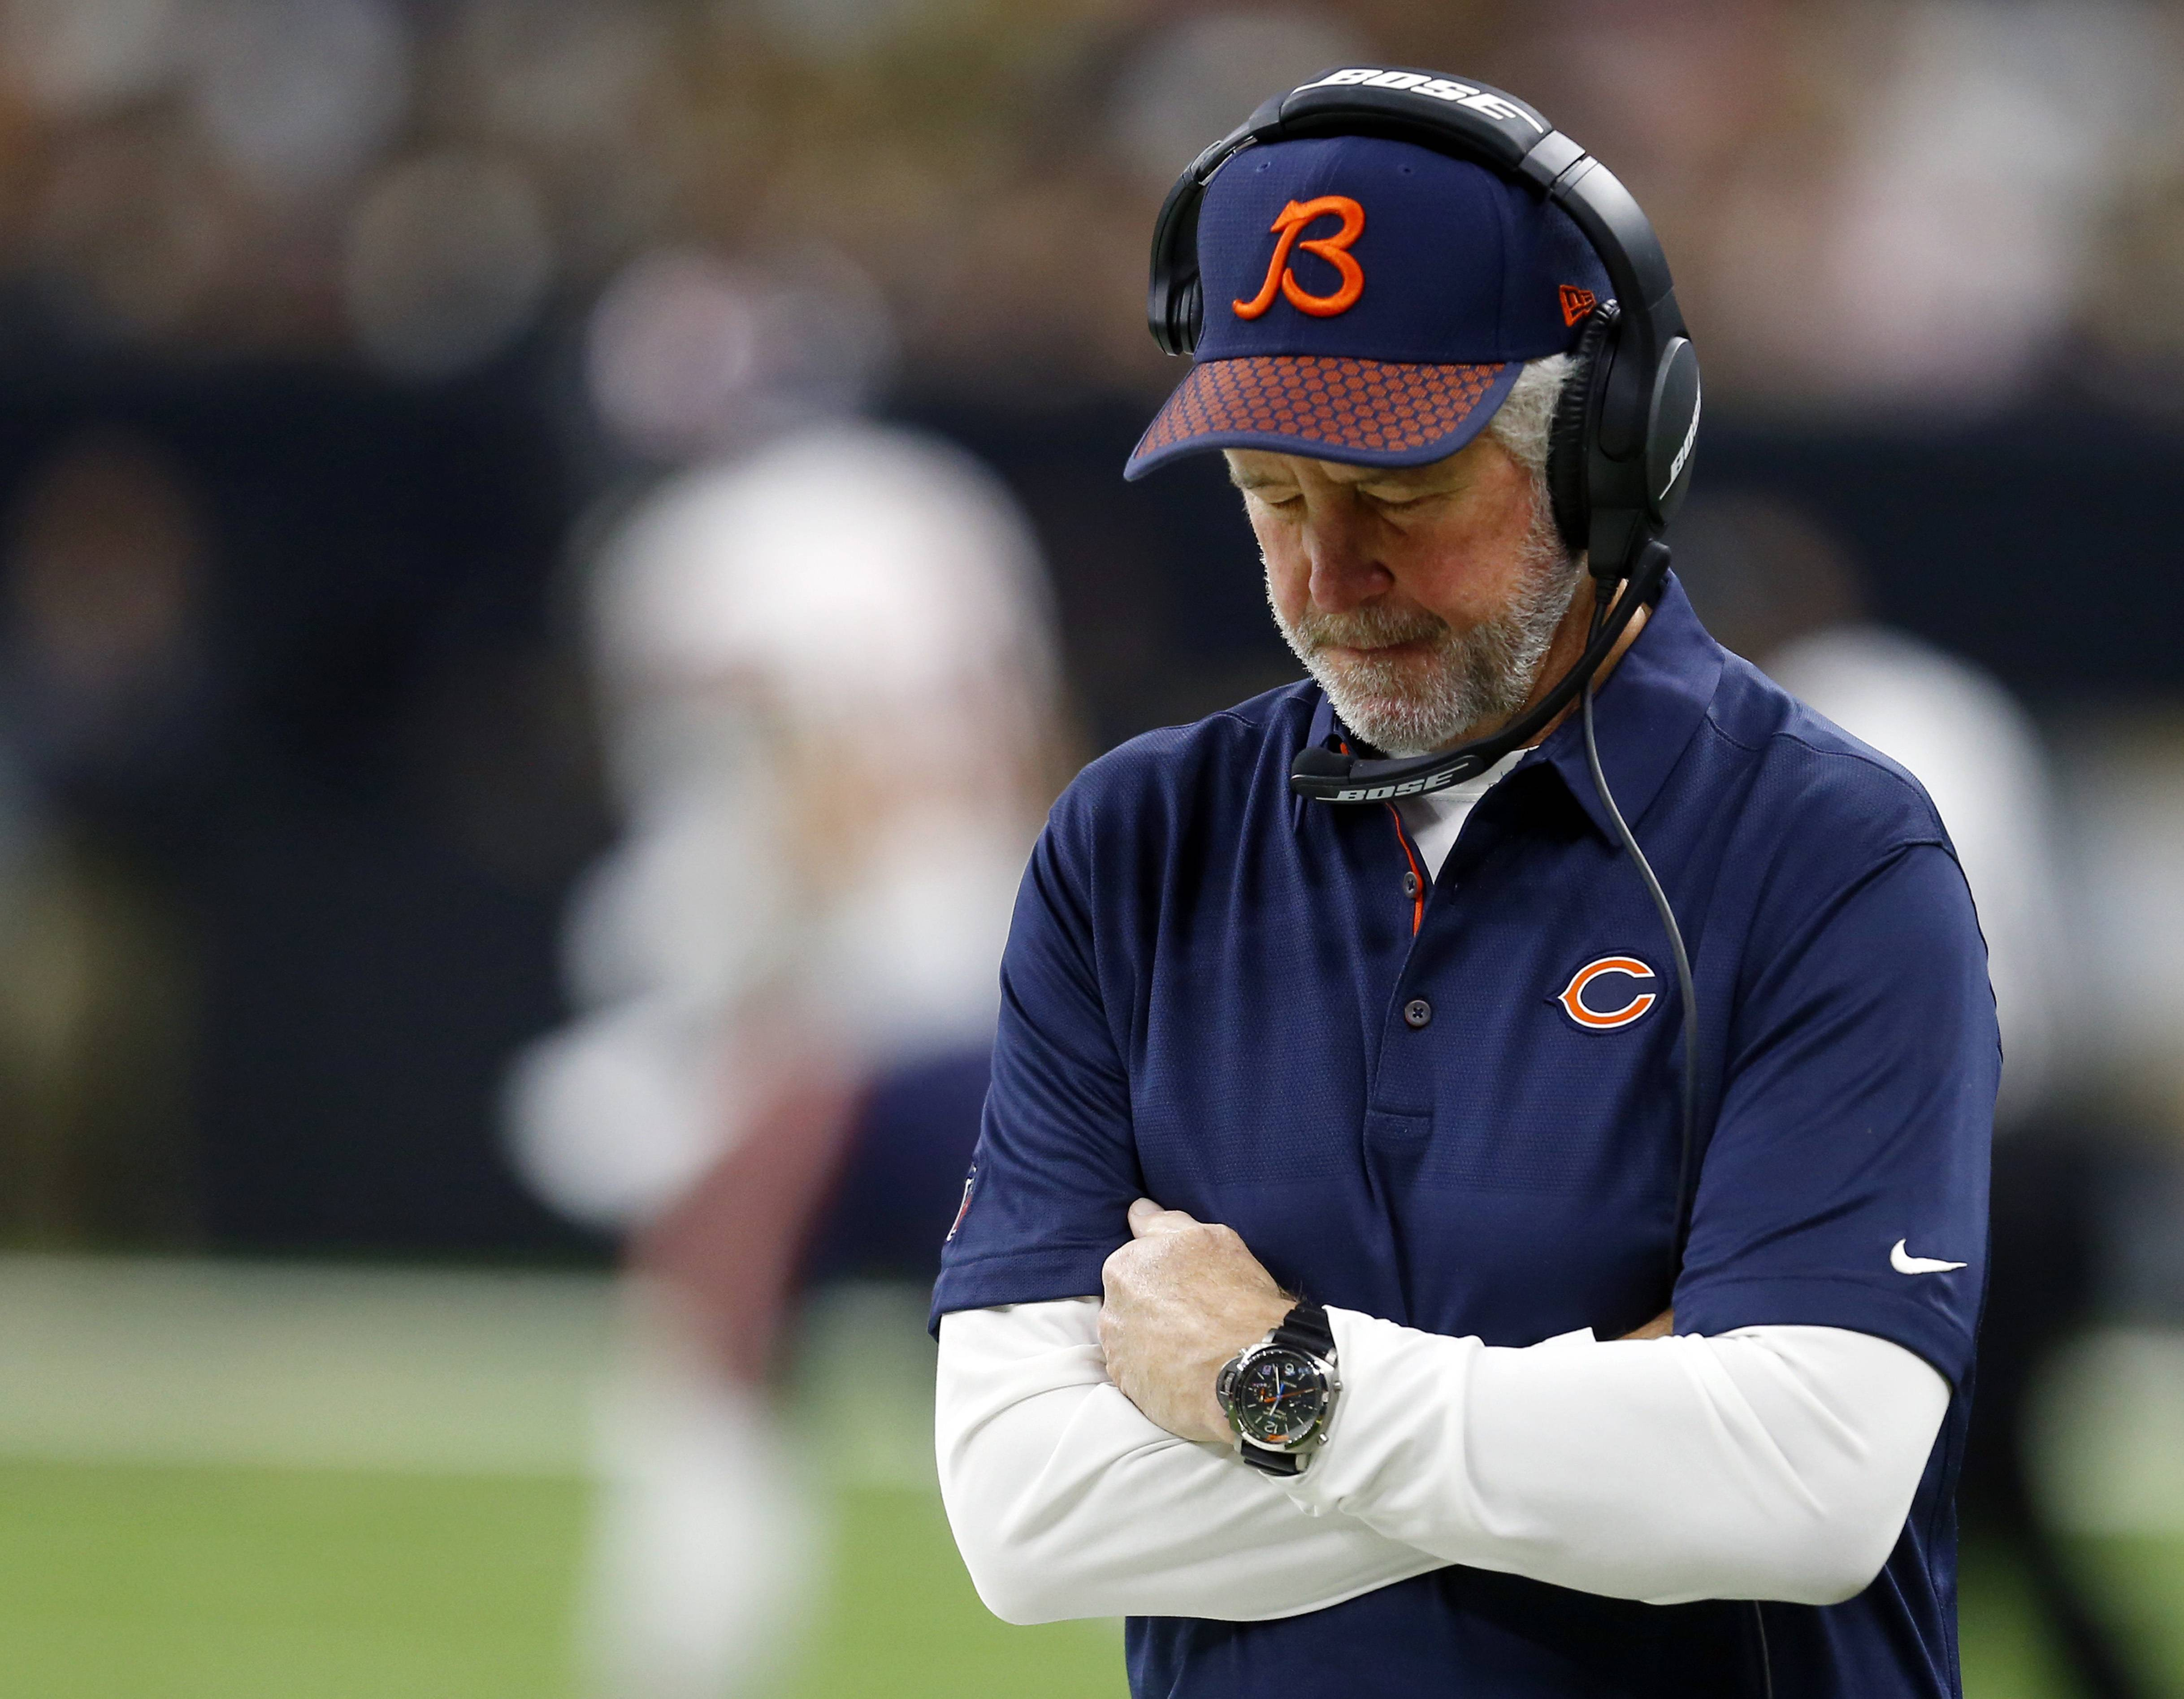 Under head coach John Fox, the Chicago Bears are just 3-14 vs. the NFC North, a record far worse than his overall 13-33.